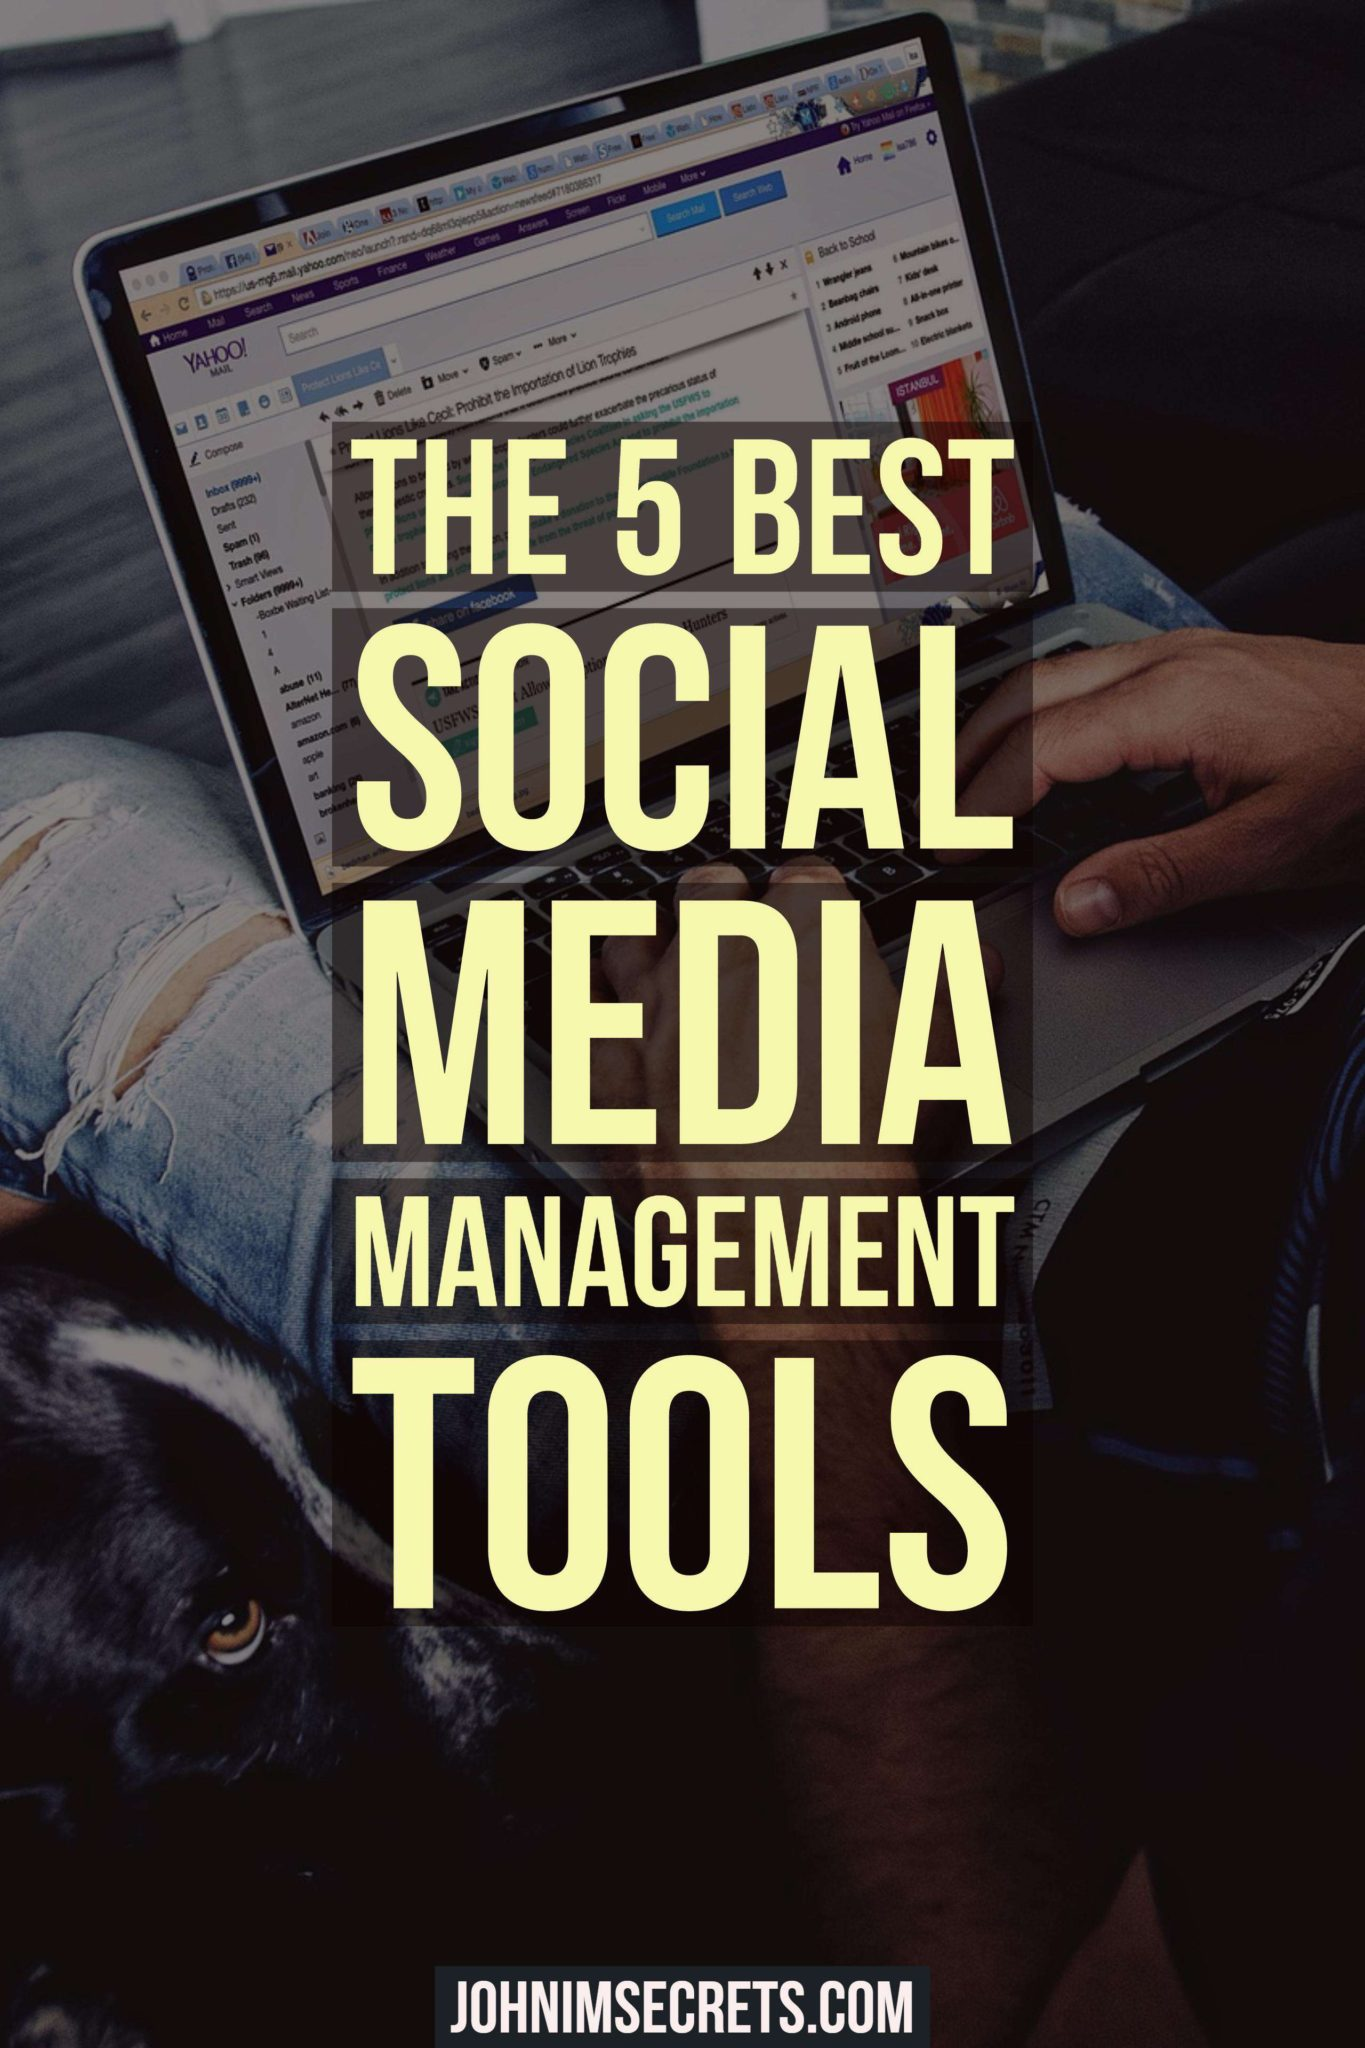 The 5 Best Social Media Management Tools - Pin